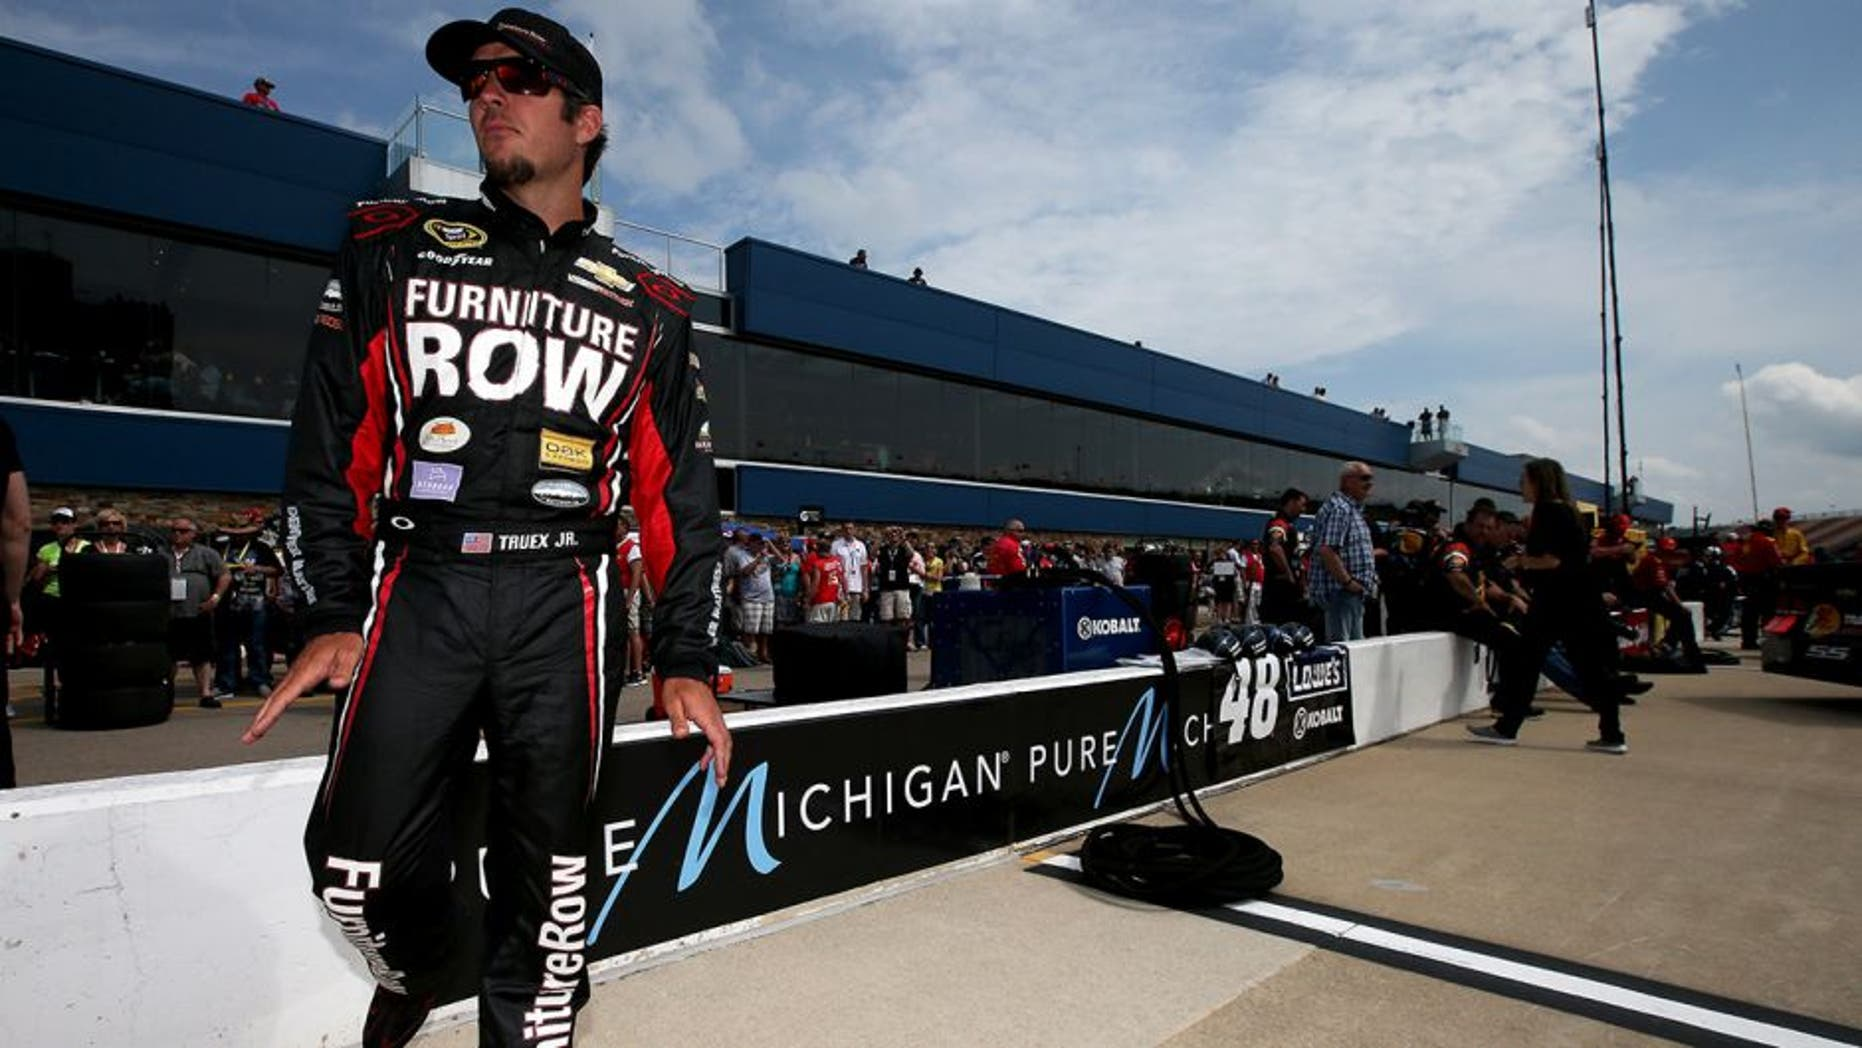 BROOKLYN, MI - JUNE 12: Martin Truex Jr., driver of the #78 Furniture Row/Visser Precision Chevrolet, stands on the grid during qualifying for the NASCAR Sprint Cup Series Quicken Loans 400 at Michigan International Speedway on June 12, 2015 in Brooklyn, Michigan. (Photo by Sean Gardner/NASCAR via Getty Images)